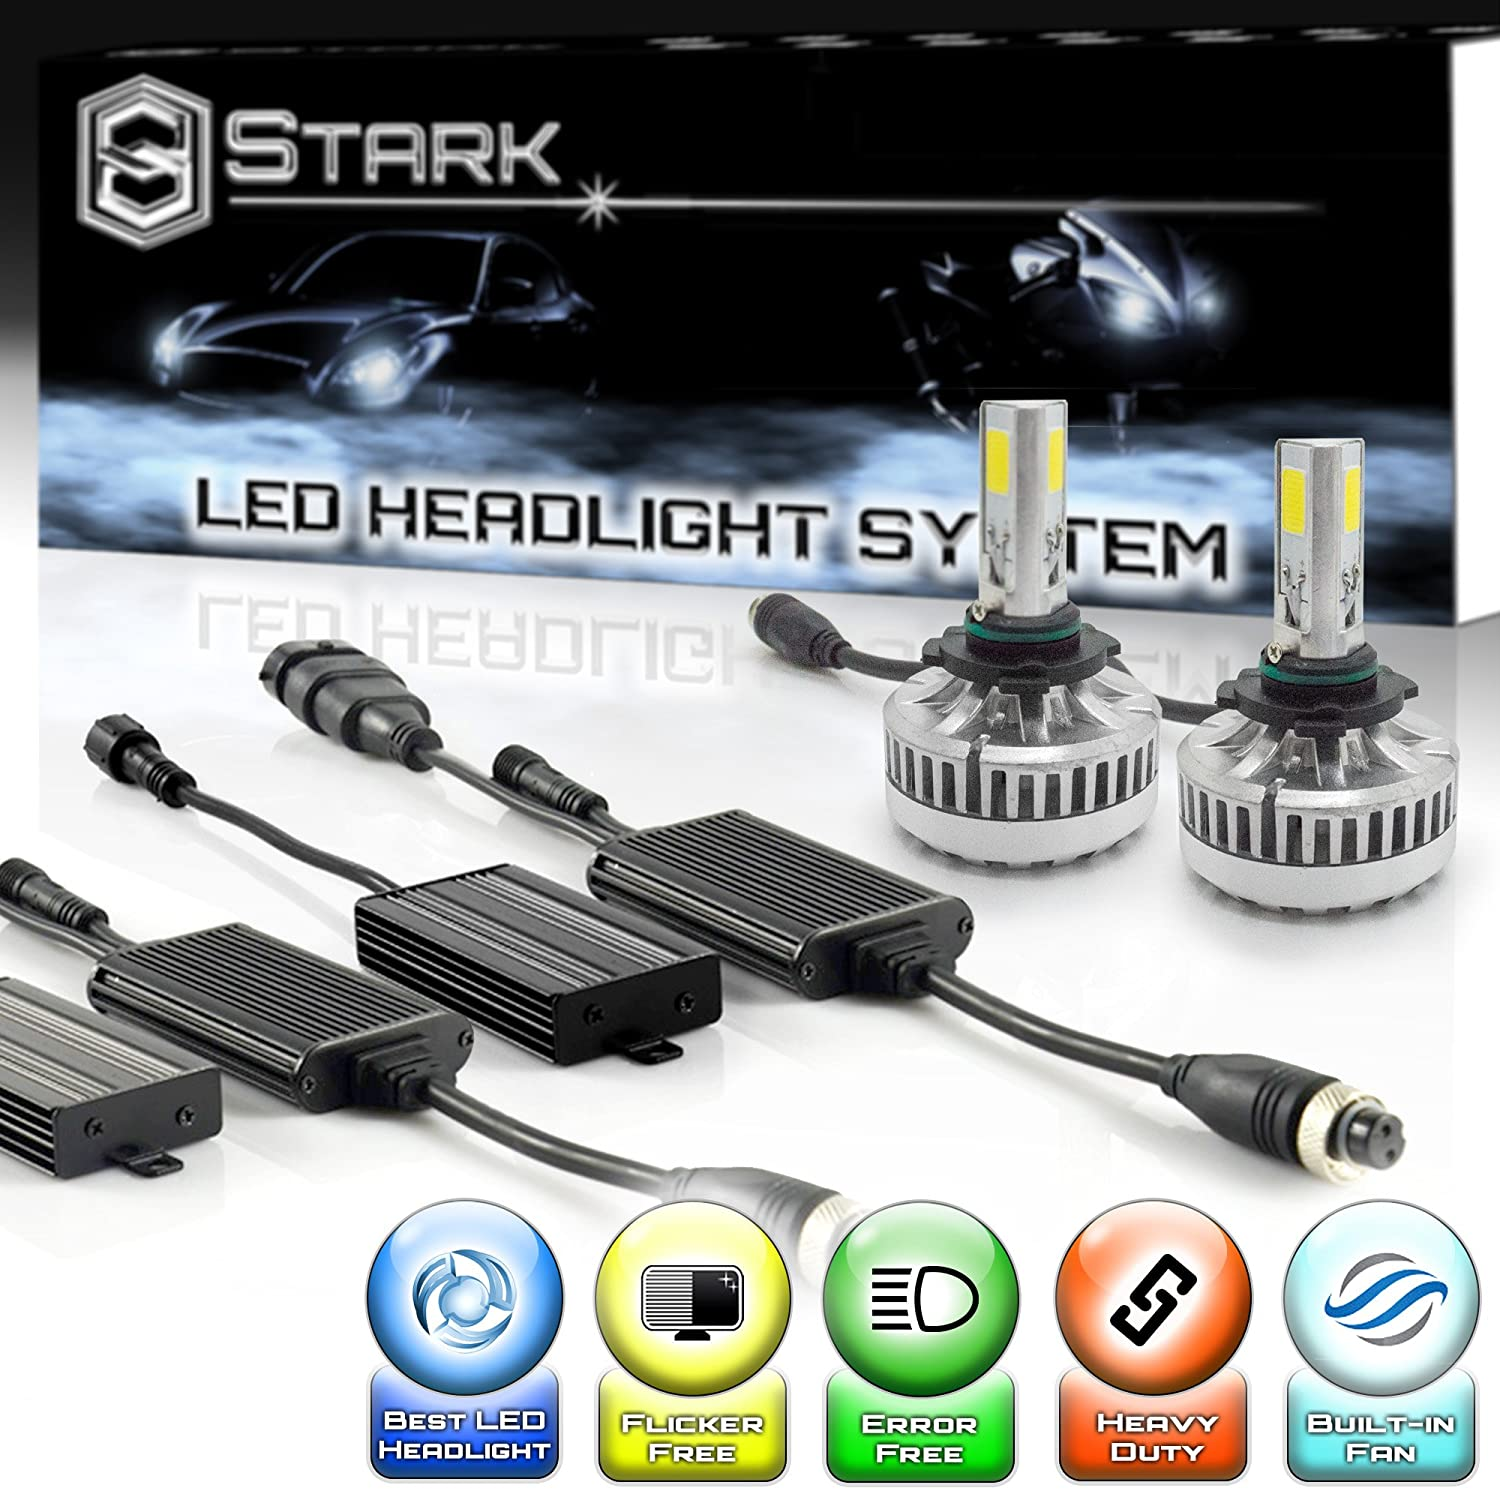 Stark 90W 9000LM LED Headlight Conversion Kit - Cool White 6000K 6K - High Beam - 9005 / HB3 UNV inc